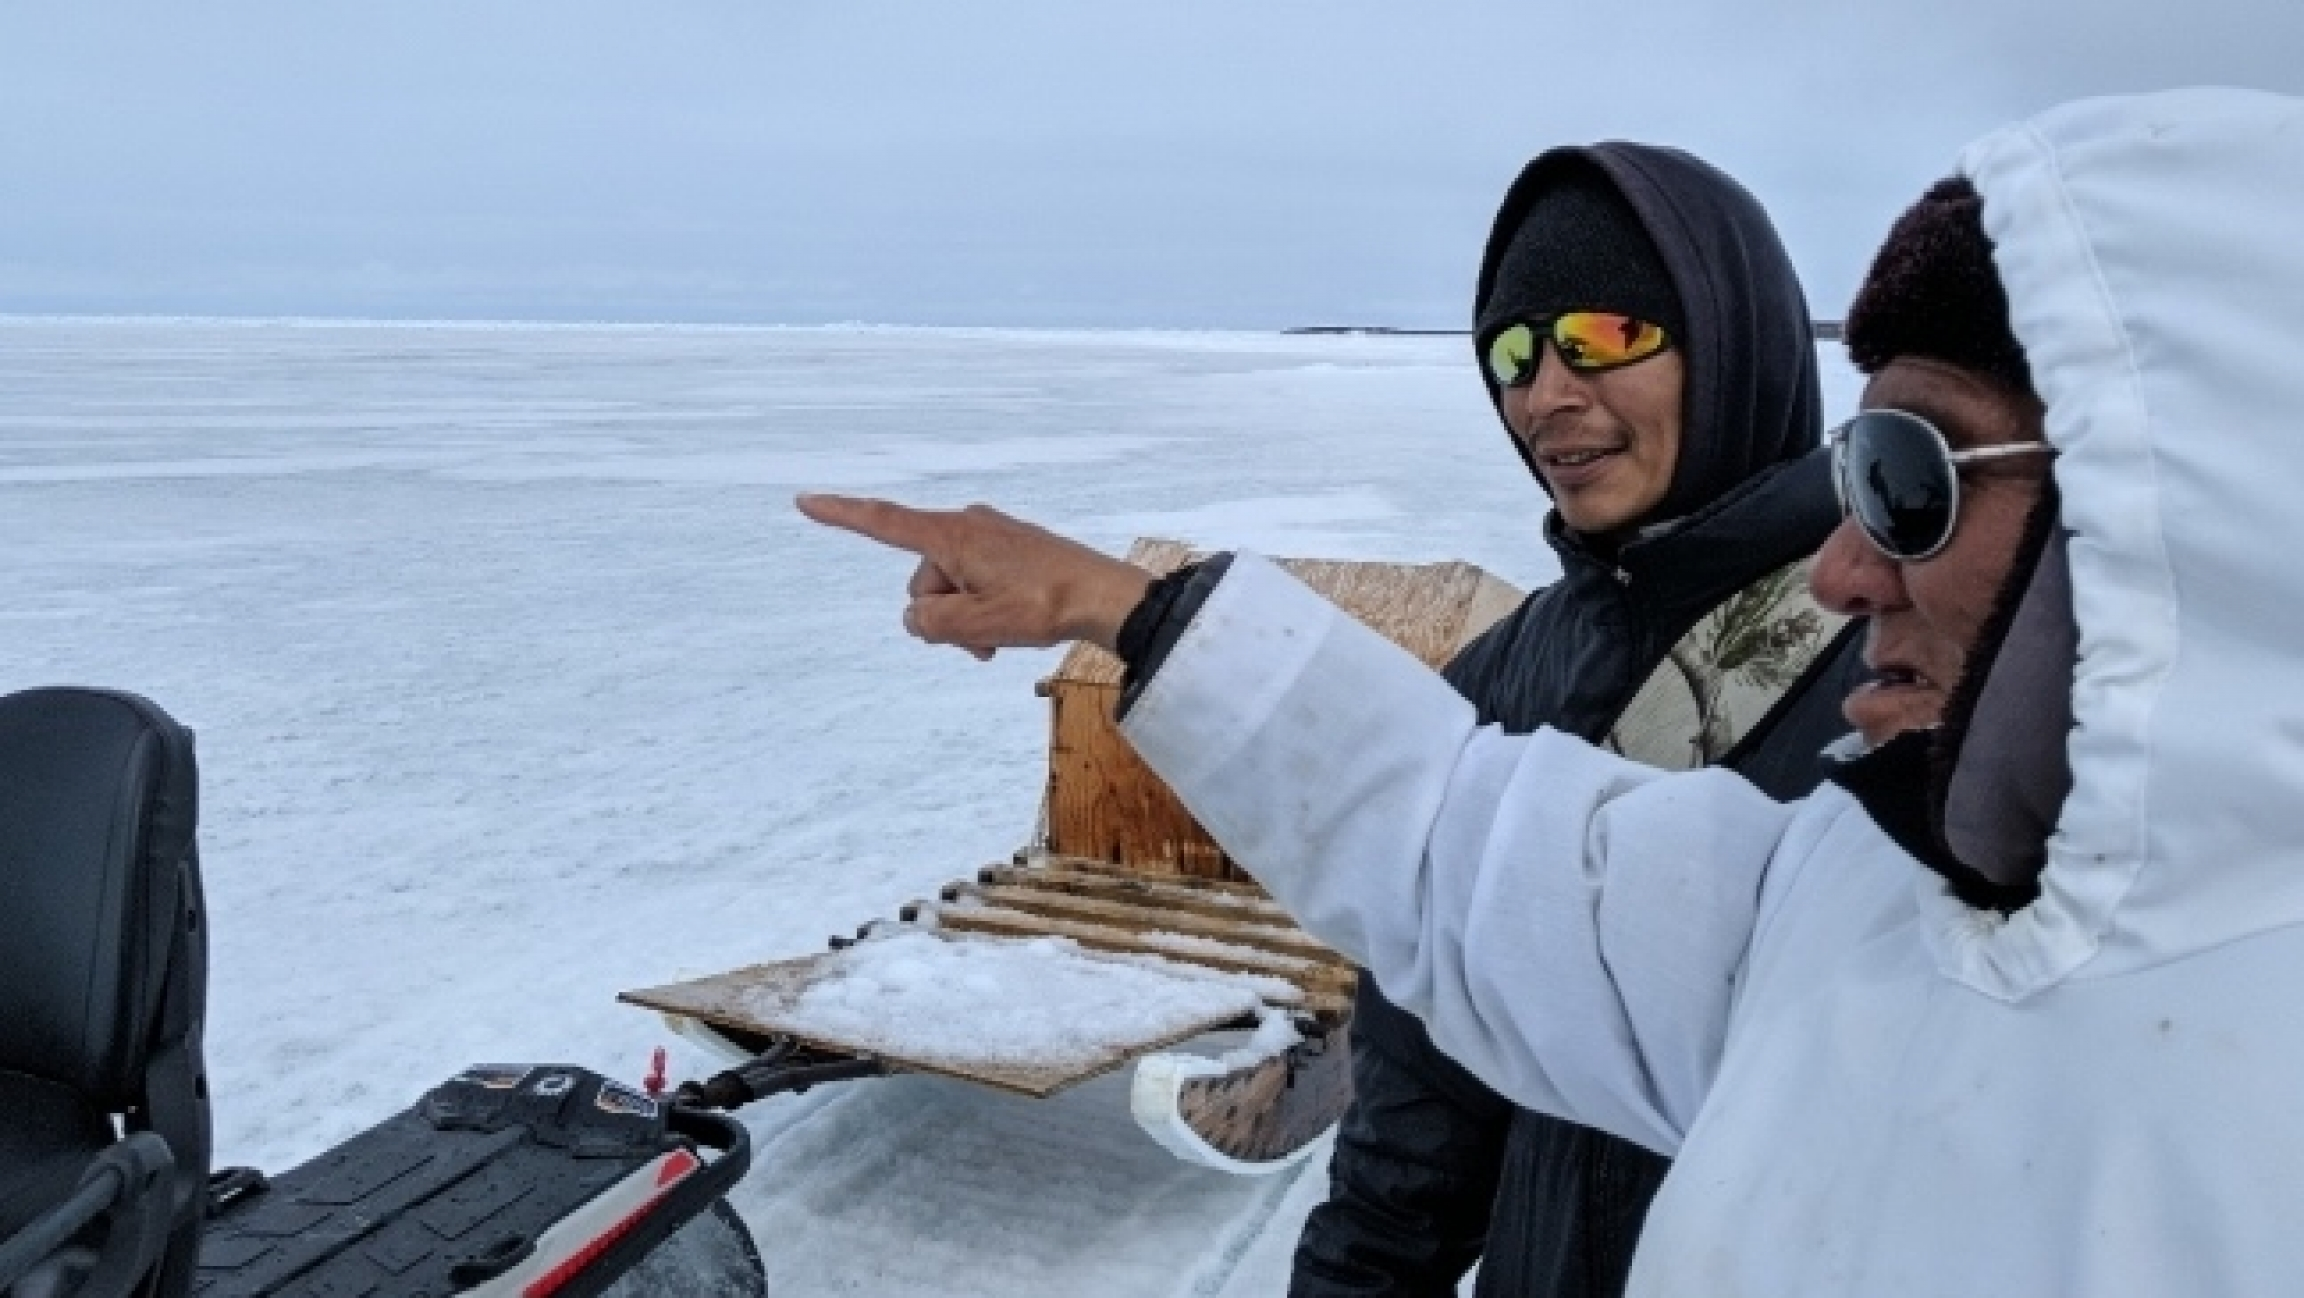 An elder wearing sunglasses and a white coat points off into the Arctic distance while standing by another man wearing sunglasses.